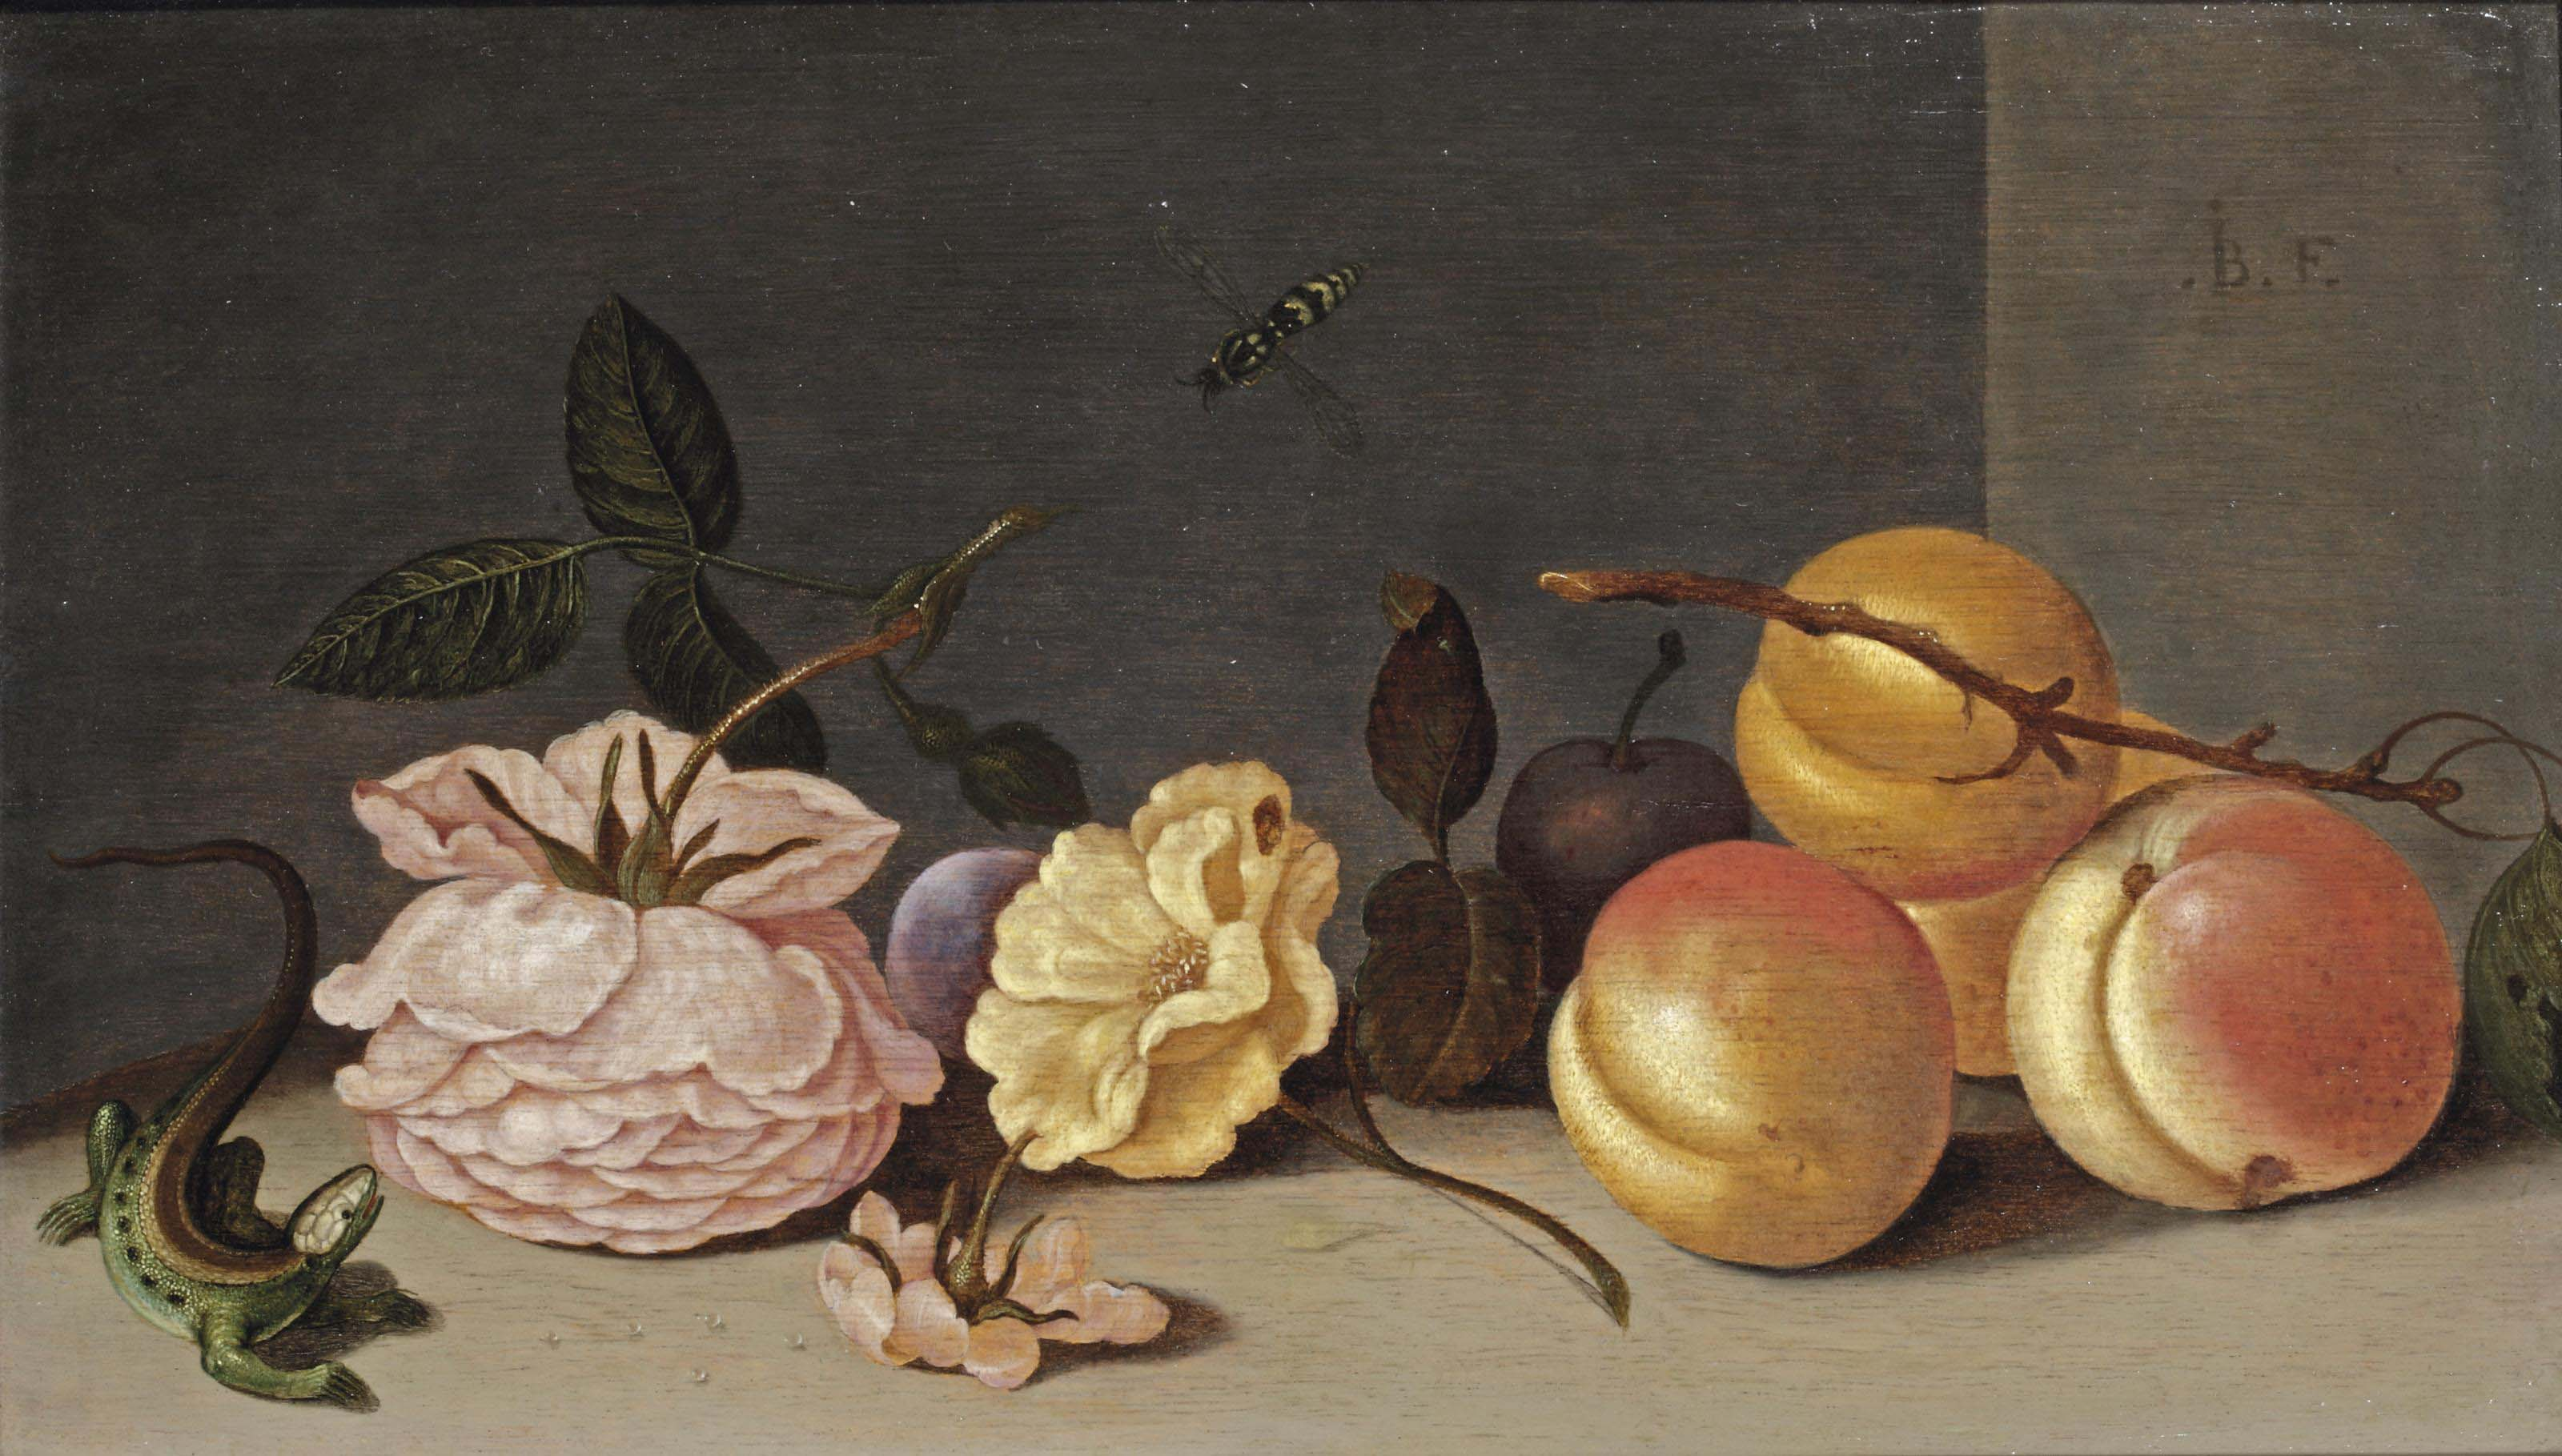 A lizard, rose, peaches and other flowers on a stone ledge